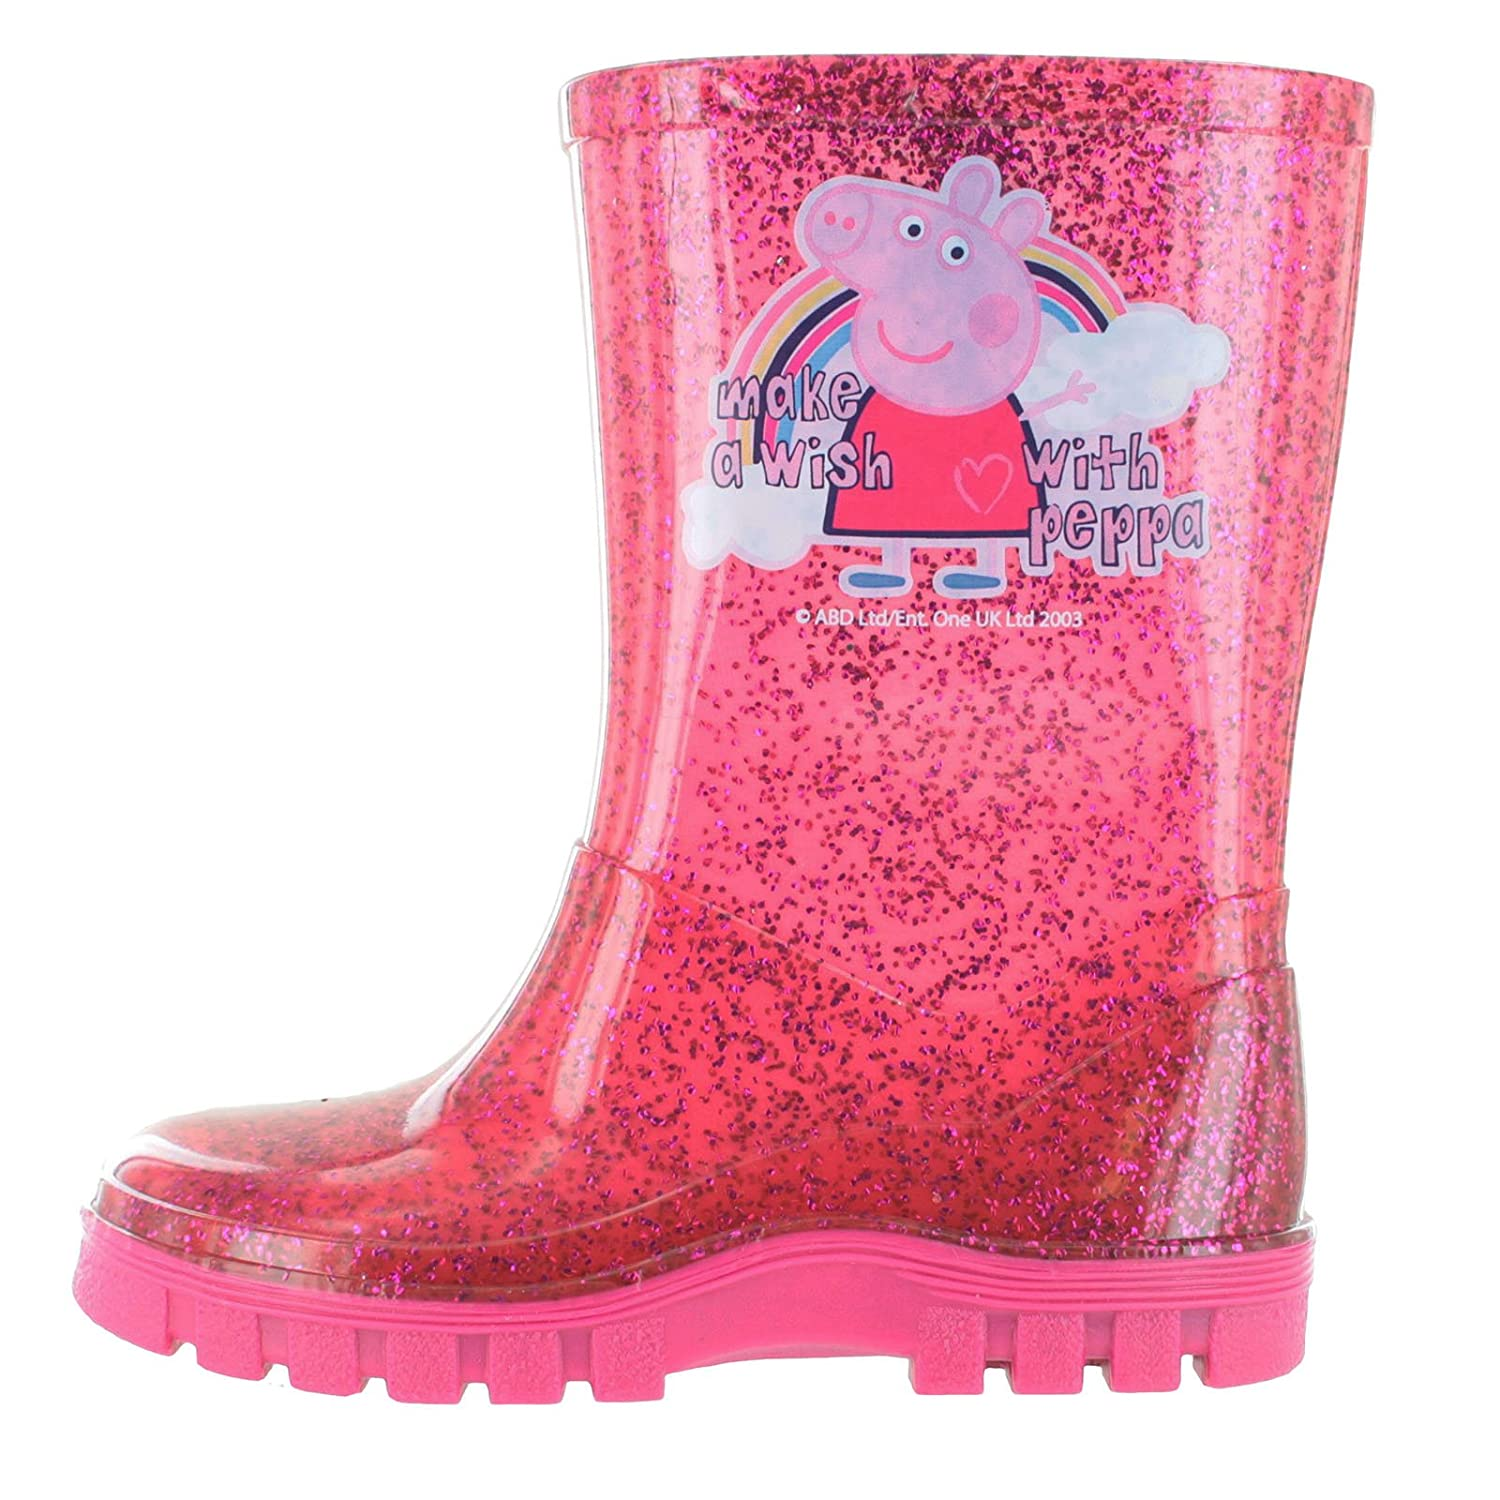 Peppa Pig Glitter Pink Make A Wish Wellington Boots UK Sizes 4-10 William Lamb